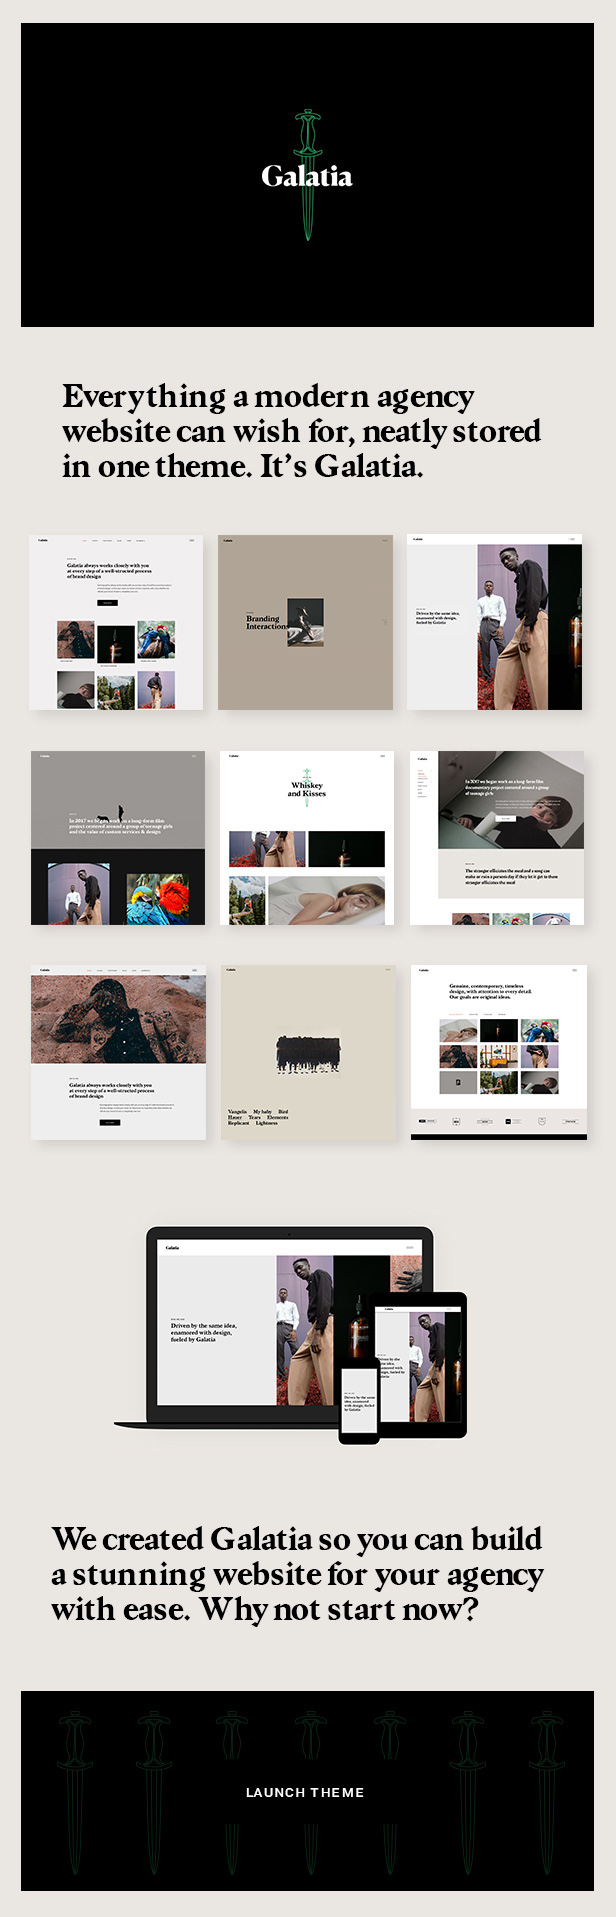 Galatia - Contemporary Agency Theme - 1